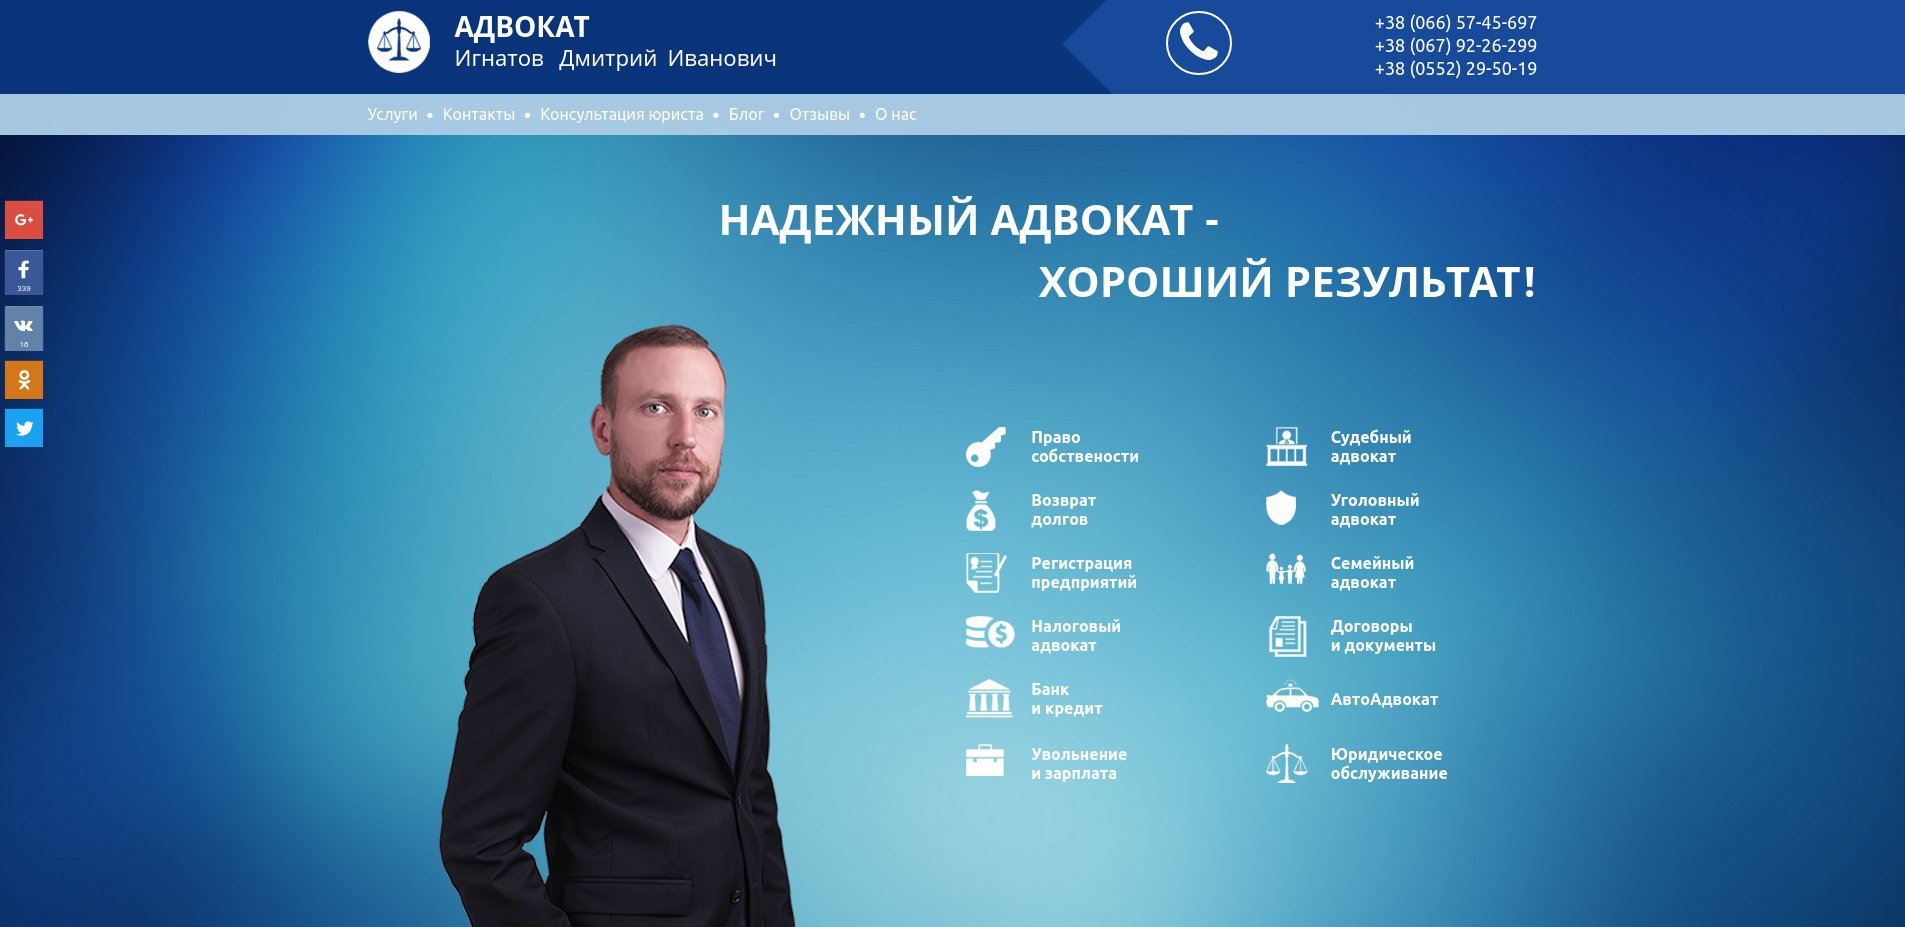 Personal website of lawyer. Kherson